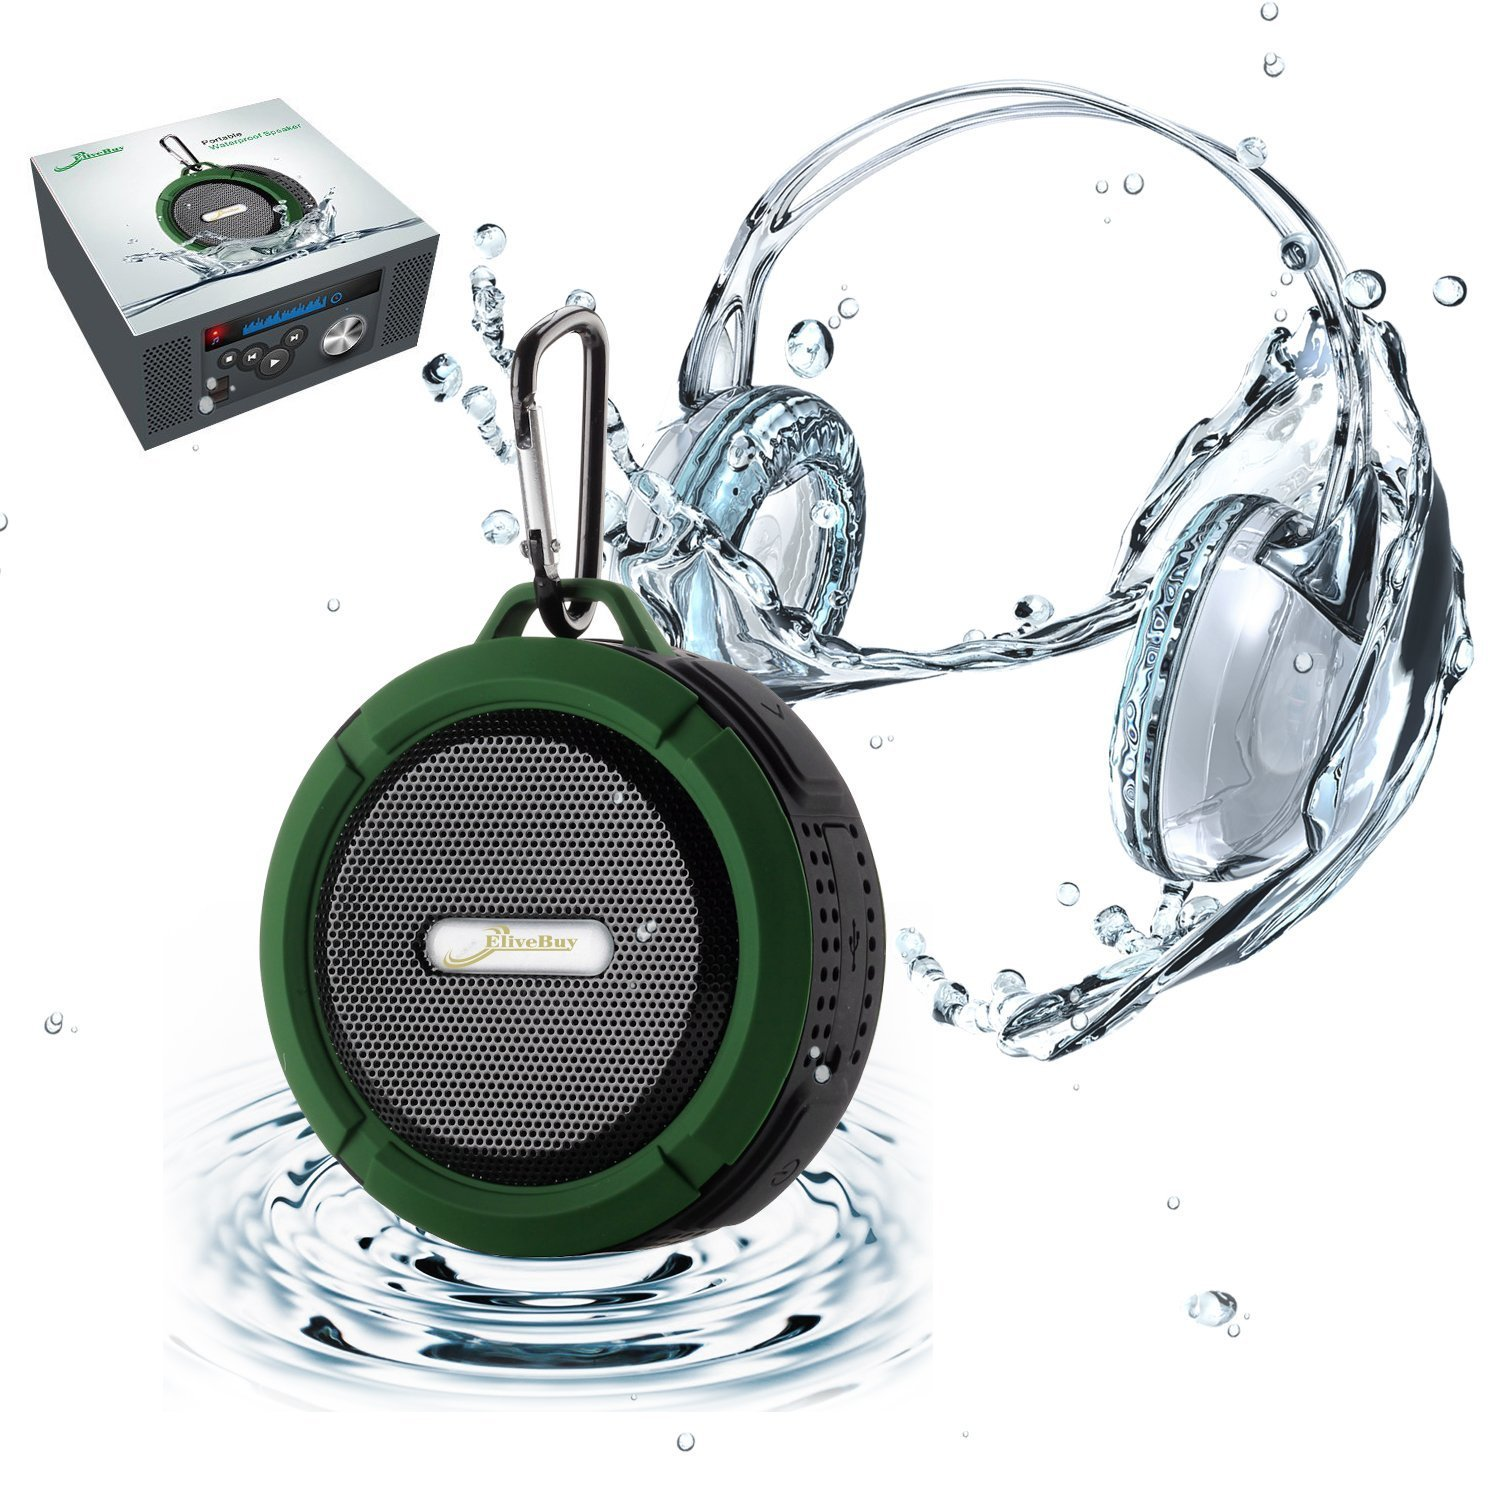 Amazon com  Shower Speaker  Elivebuy Waterproof Bluetooth Speaker  V4 2   with 5W Driver  Suction Cup  TF Card Function  Built in Mic and FM Radio    Army. Amazon com  Shower Speaker  Elivebuy Waterproof Bluetooth Speaker